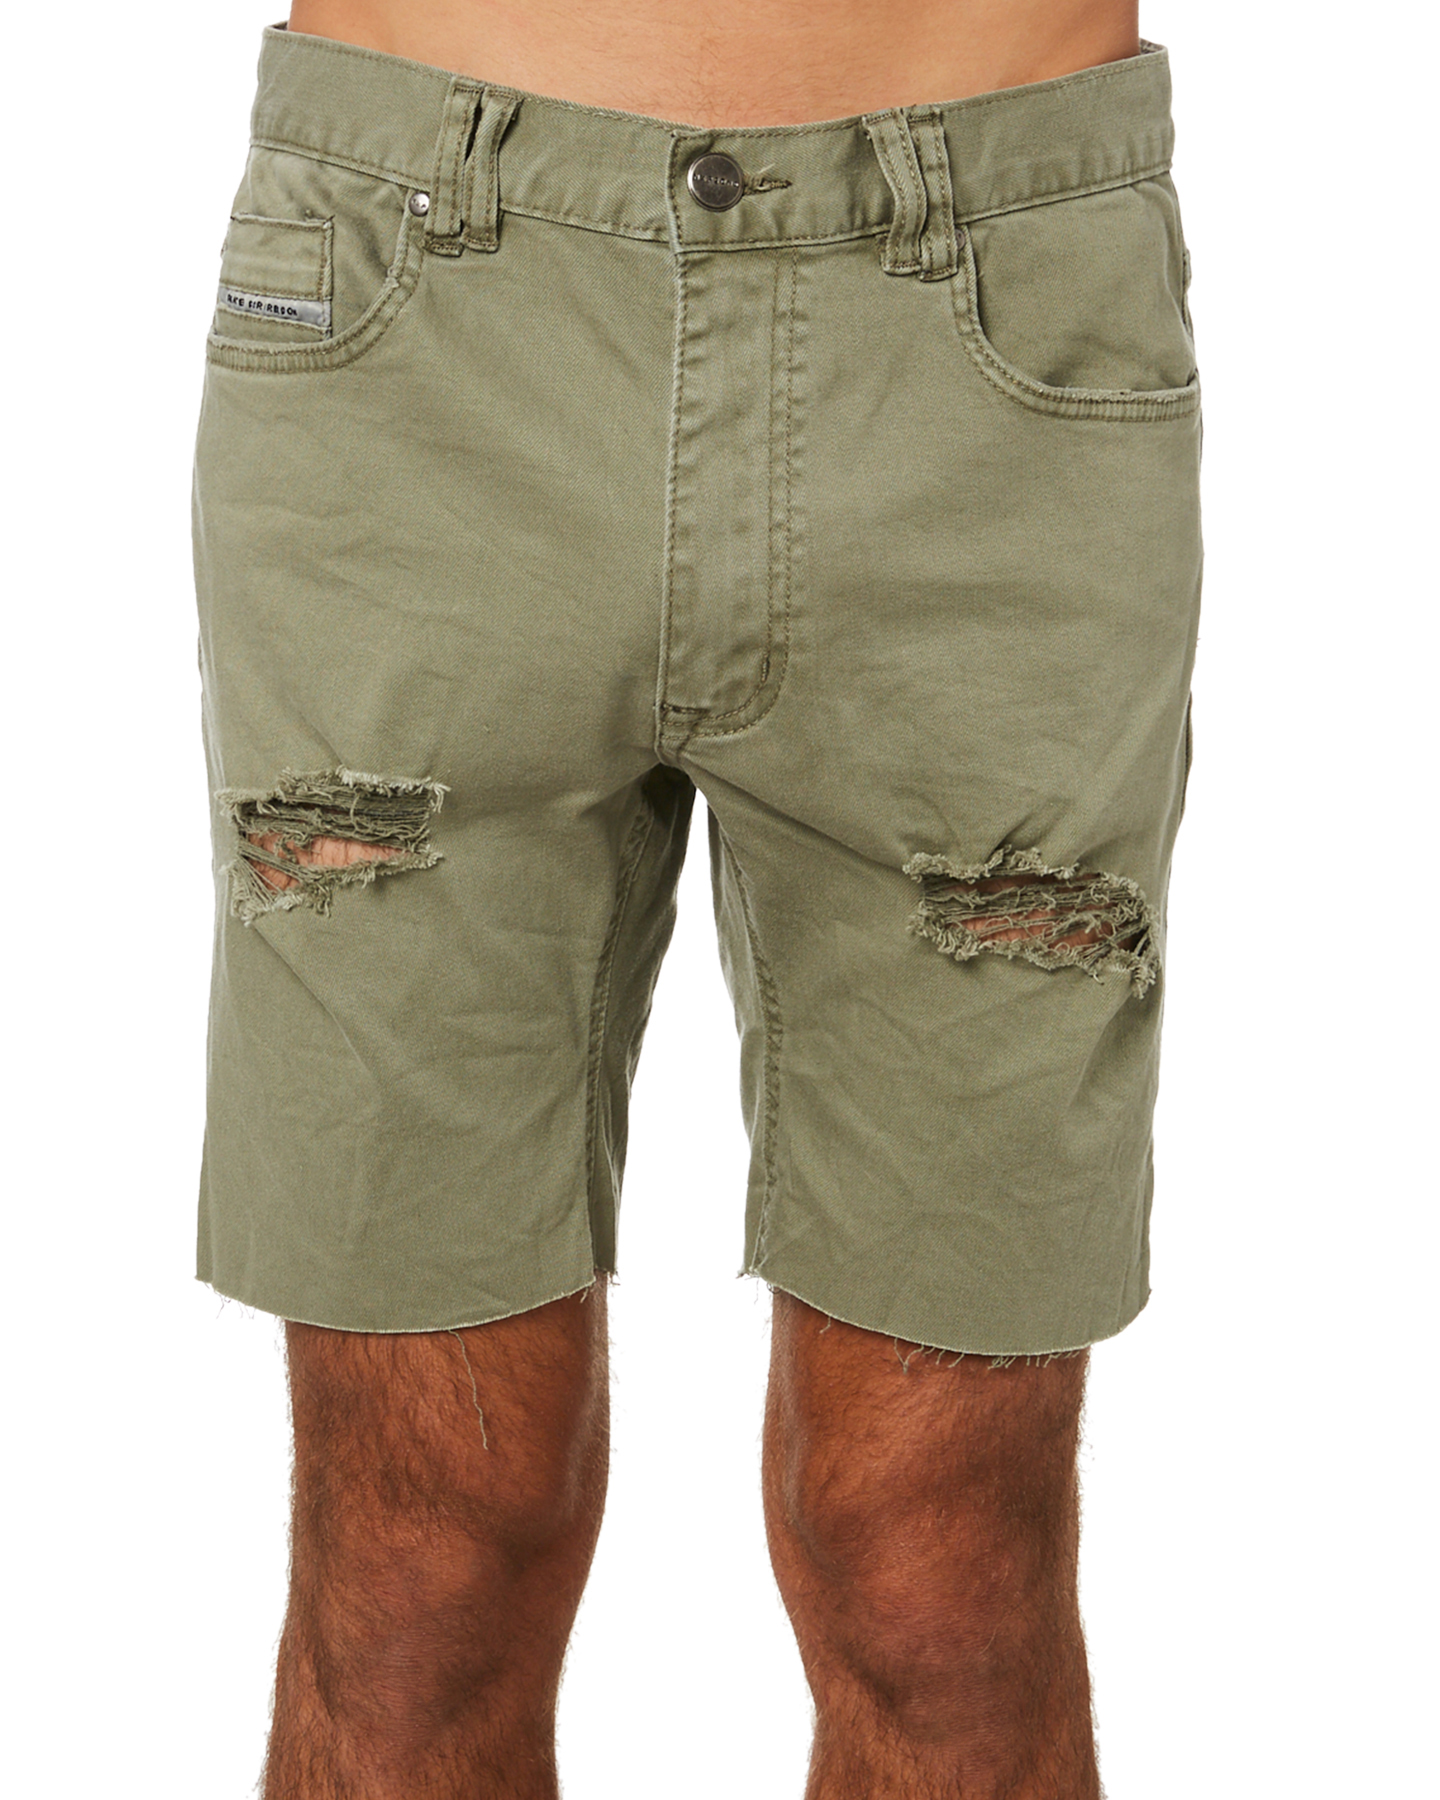 Nena And Pasadena Rawlins Mens Denim Short Destroyed Khaki Destroyed Khaki